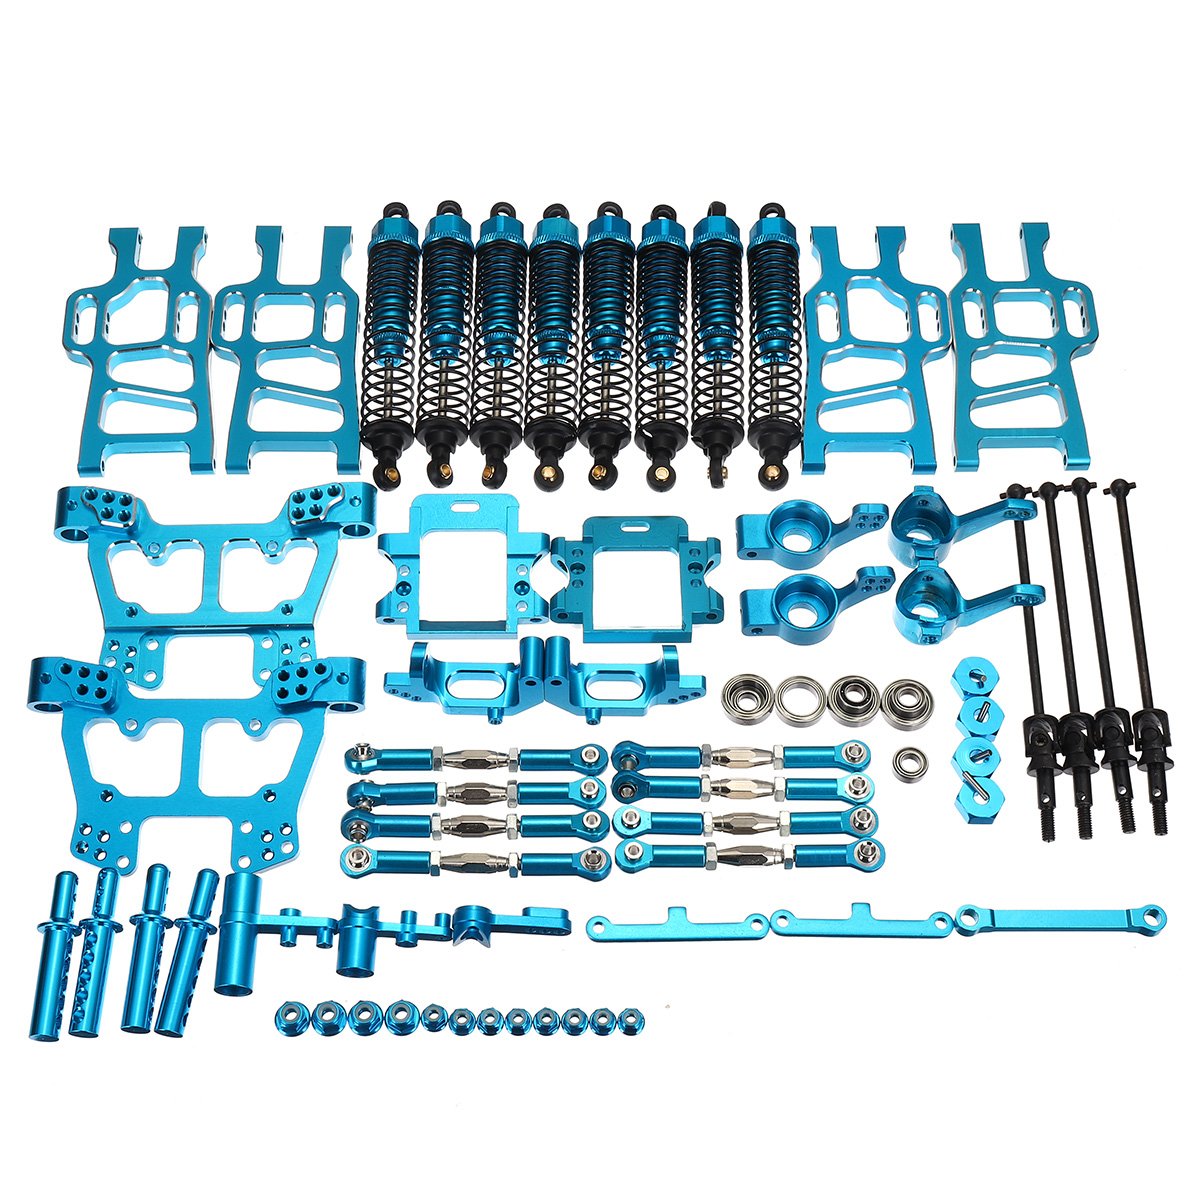 Upgrade Parts Package For HSP RC 1:10 94111 94108 Crawler Car Monster Truck Blue Parts & Accs Aluminum Alloy Blue hsp 04001 metal aluminum chassis upgrade parts 03601 for redcat volcano epx exceed infinitive ep 1 10 rc buggy monster truck